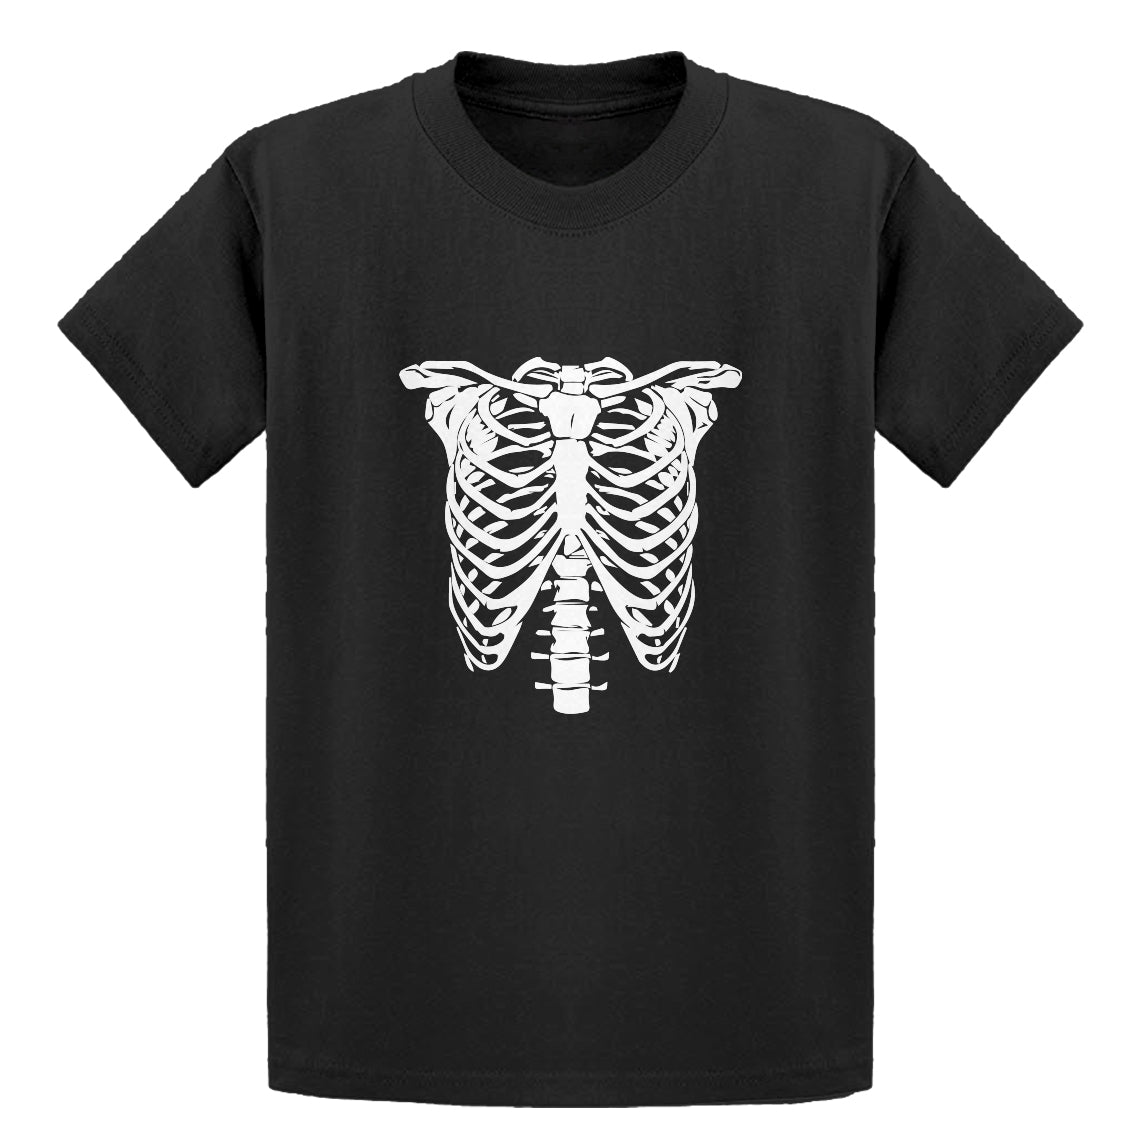 Youth Bones Costume Kids T-shirt